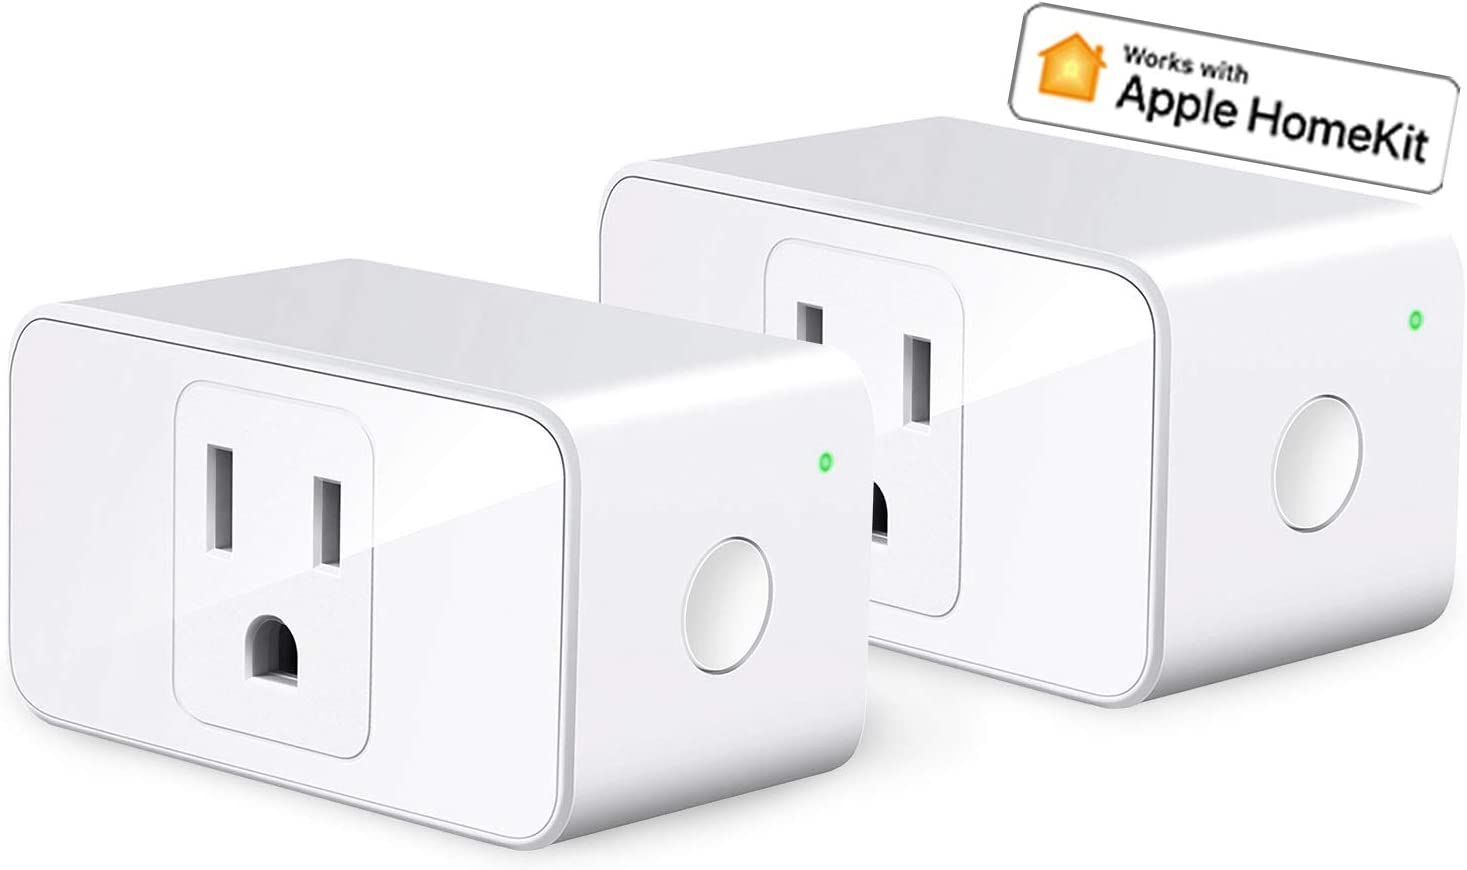 Apple HomeKit Smart Plug WiFi - Smart Outlet Works with Alexa, Google Home, Siri, Refoss Smart Socket with Timer Function, Remote Control, 16A, 2 Pack